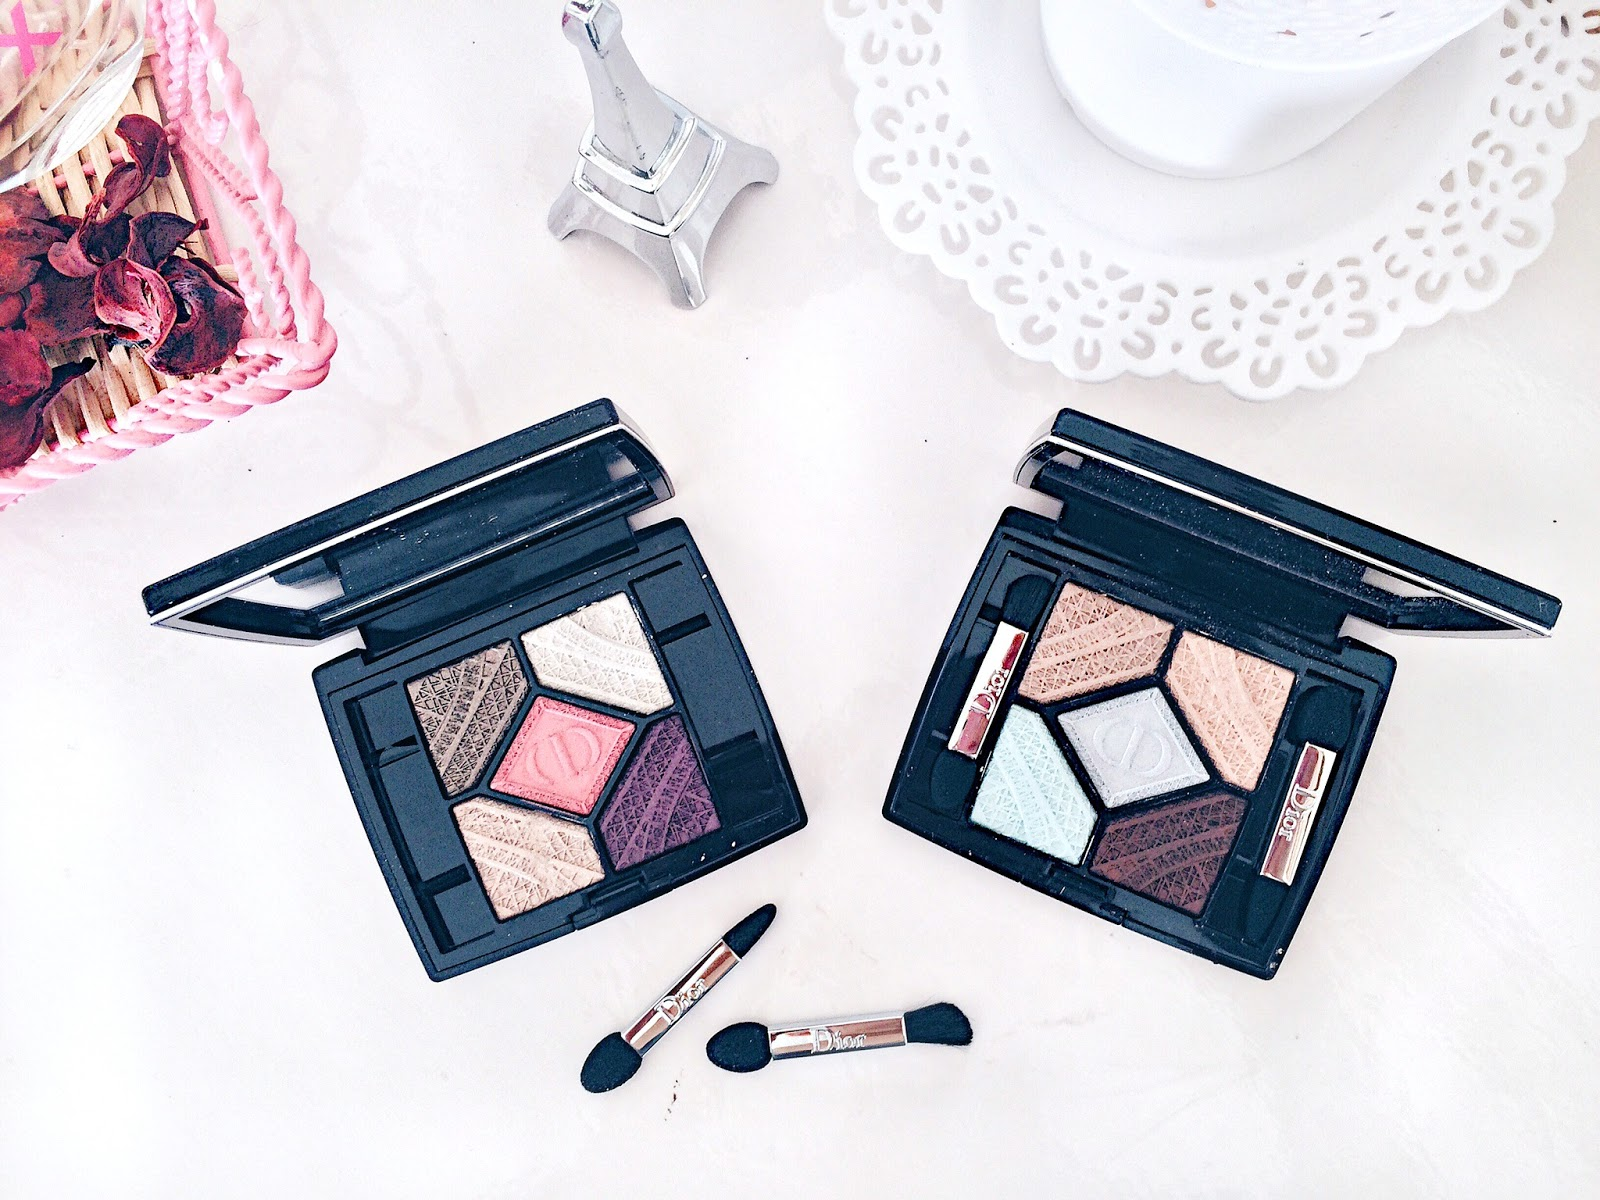 dior luxury makeup eyeshadow palette review